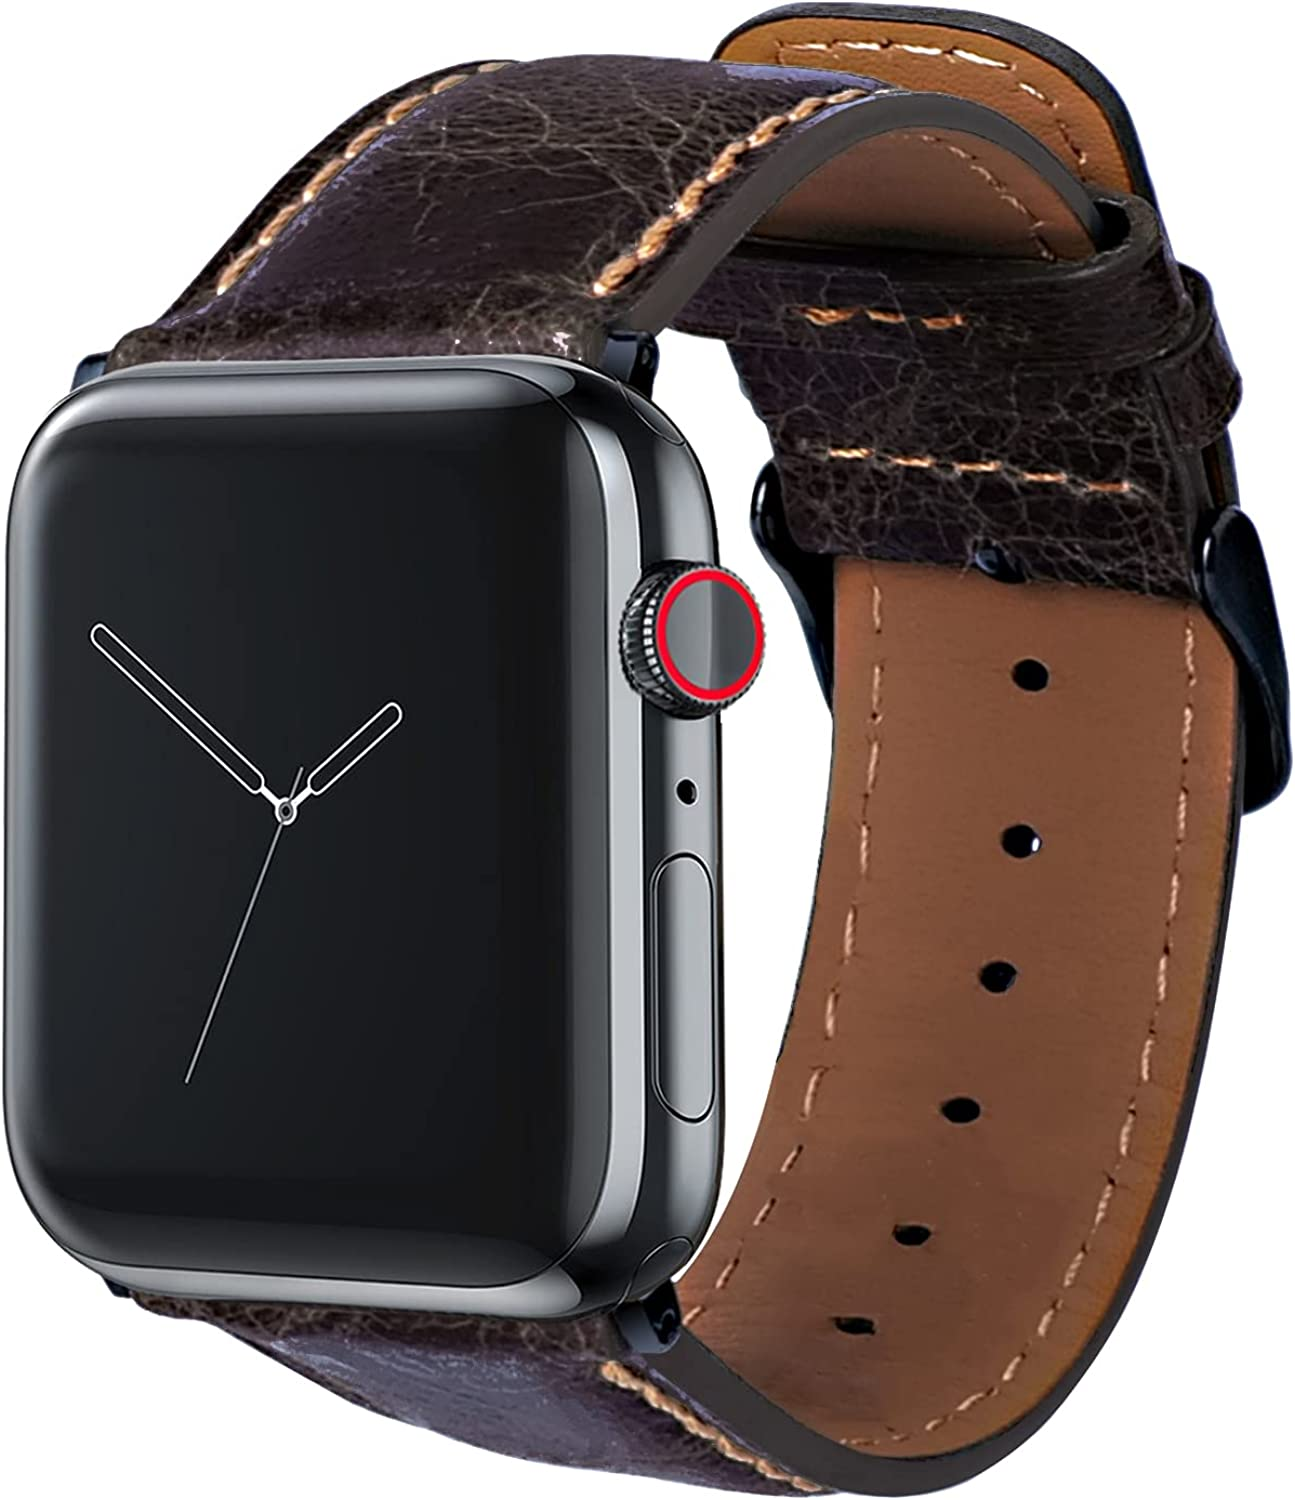 VANZON Watch Band Compatible with Apple Watch Bands 38mm 40mm 42mm 44mm, Leather Smart Watch Band for Men Women iWatch SE Series 6 5 4 3 2 1 black band